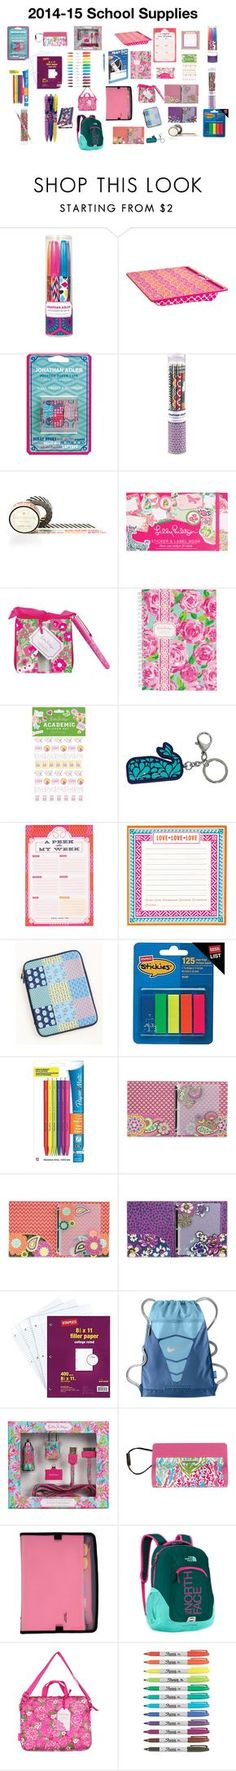 """2014-15 School Supplies"" by victoria-n-w ❤ liked on Polyvore featuring Jonathan Adler, Kate Spade, Lilly Pulitzer, Paper Mate, Vera Bradley, NIKE, Mead, Sharpie and Avery"